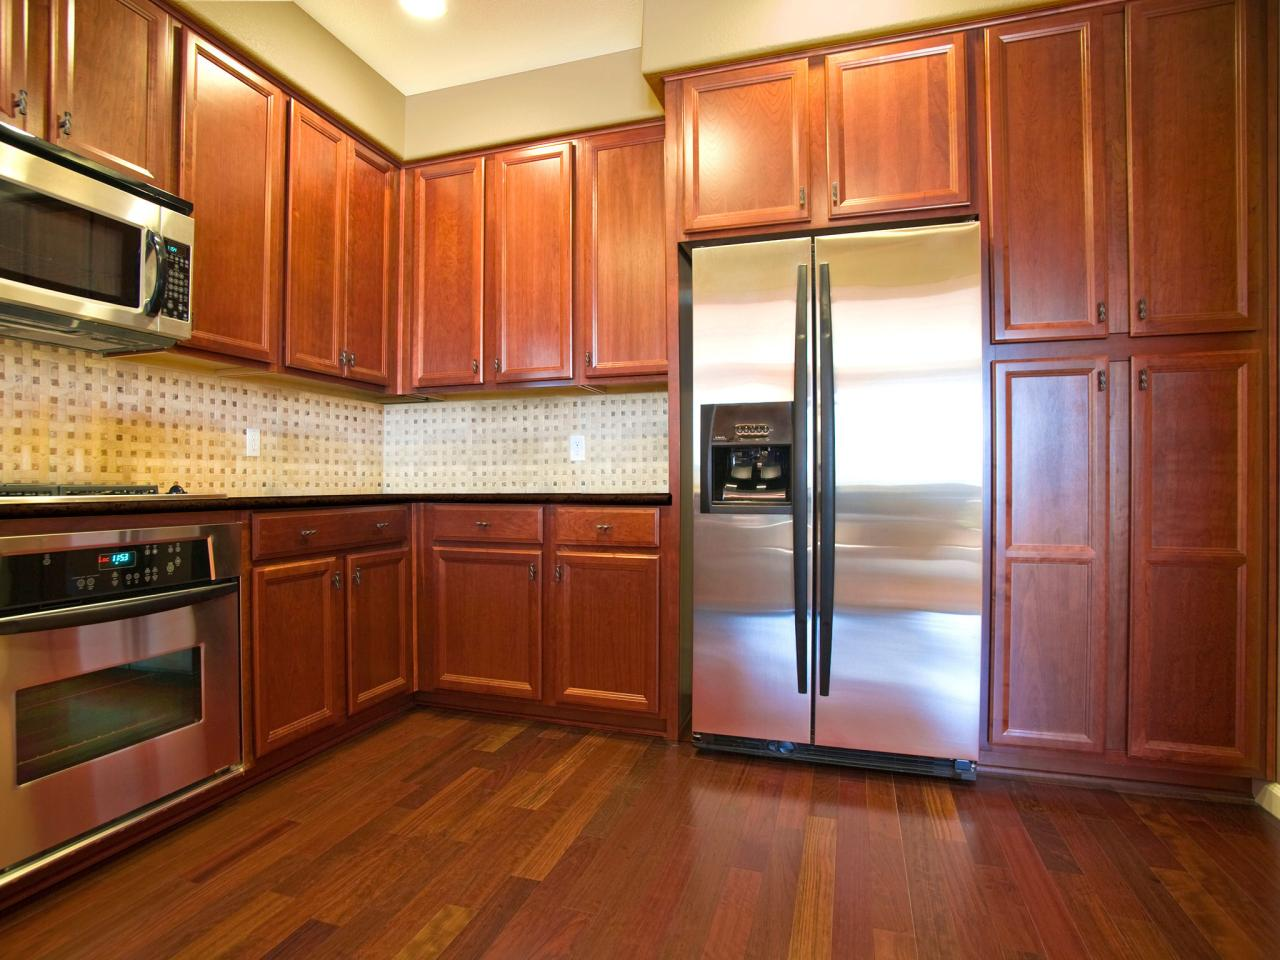 Oak kitchen cabinets pictures ideas tips from hgtv hgtv - Kitchen cupboards ideas ...